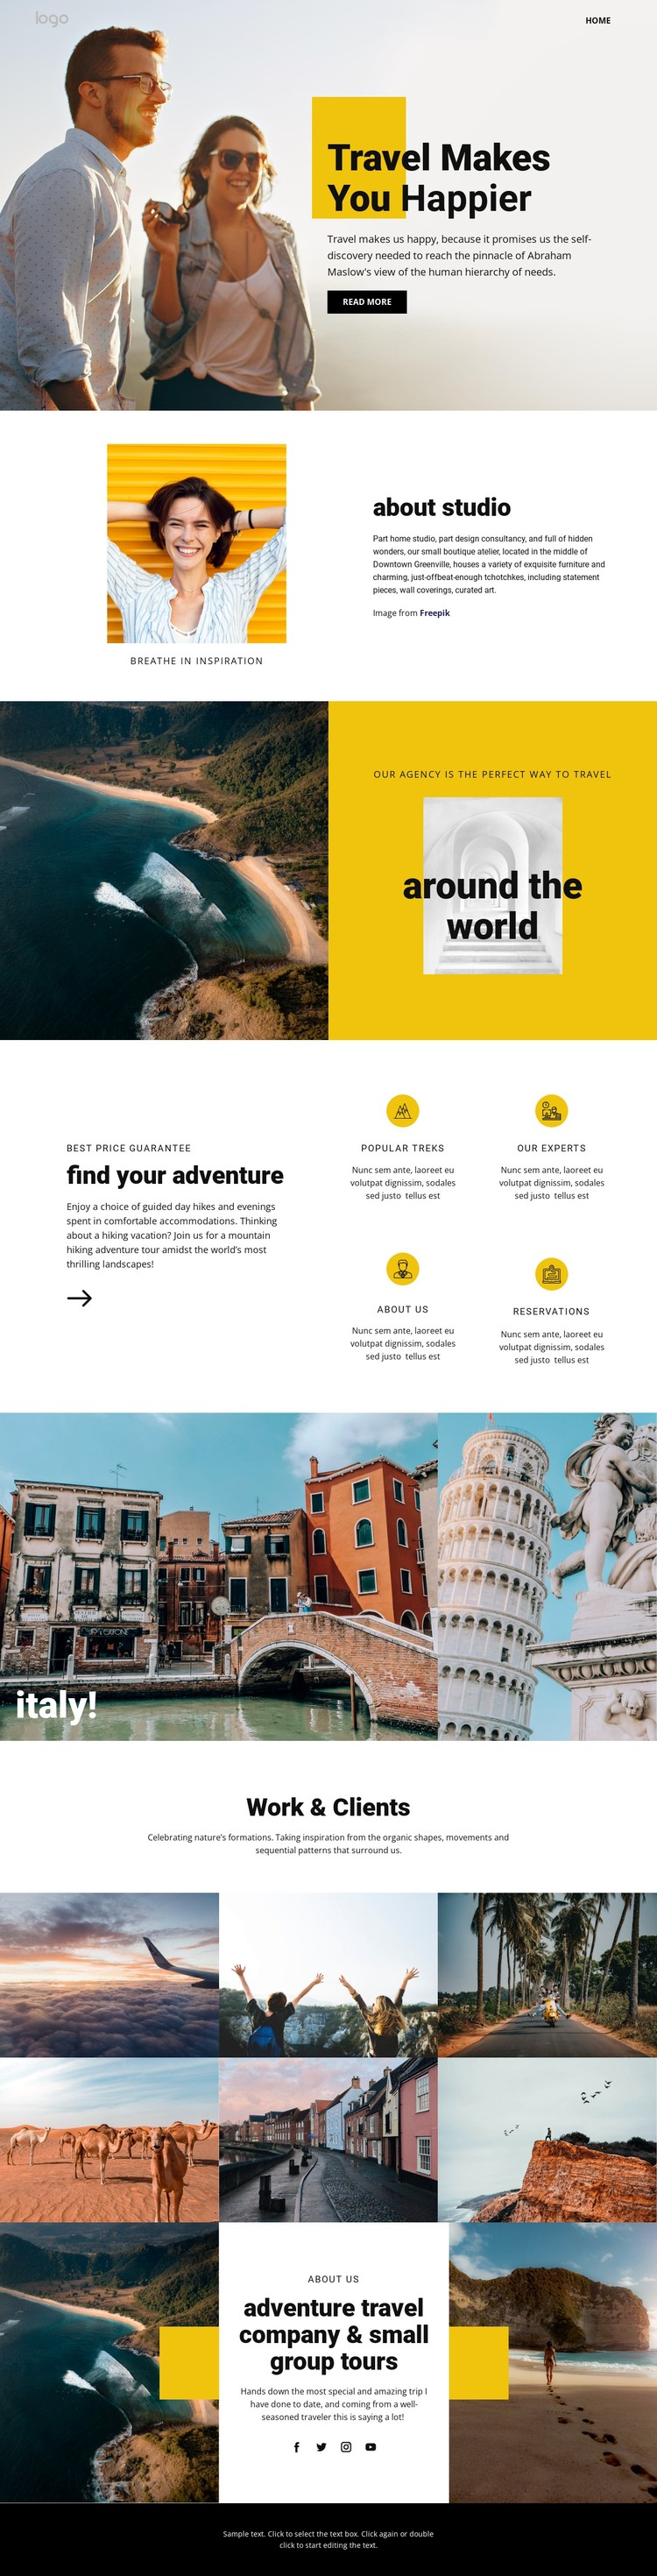 Get happier with great travel Static Site Generator